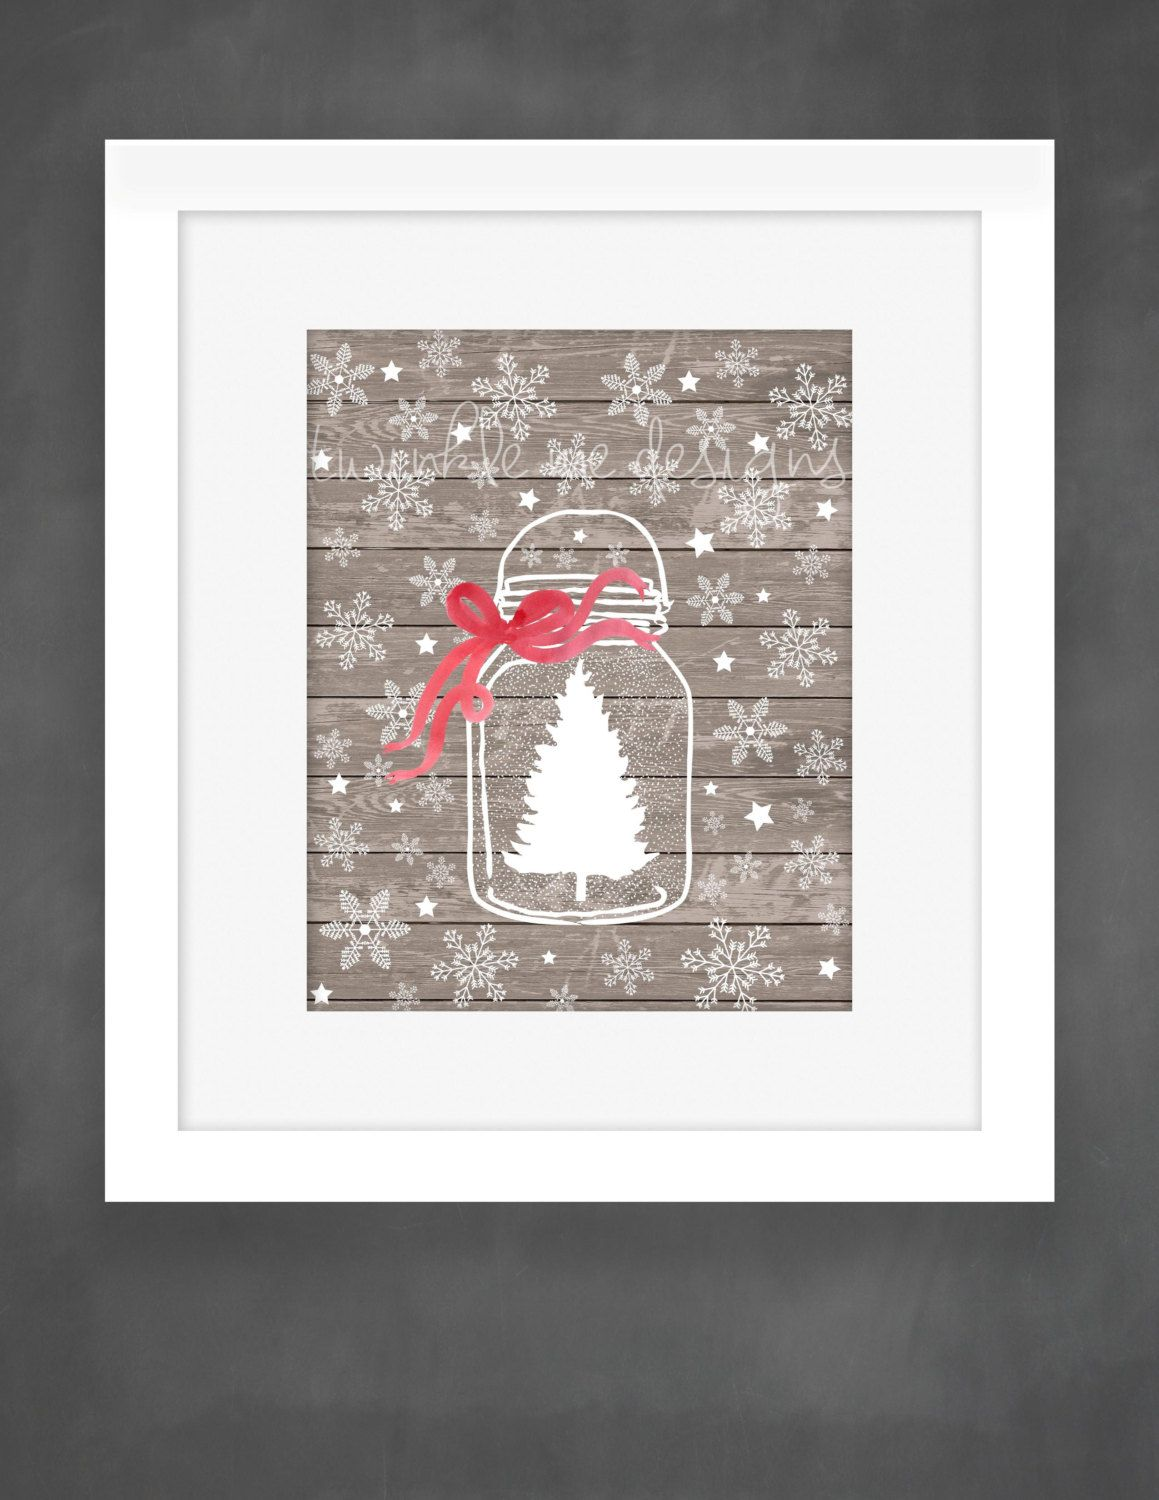 Christmas Printables Christmas Decorations Holiday Decor Snow Globe Rustic Christmas Wall Art Christmas Tree Wood 8x10 Digital Christmas Wall Art Rustic Christmas Printable Wall Art